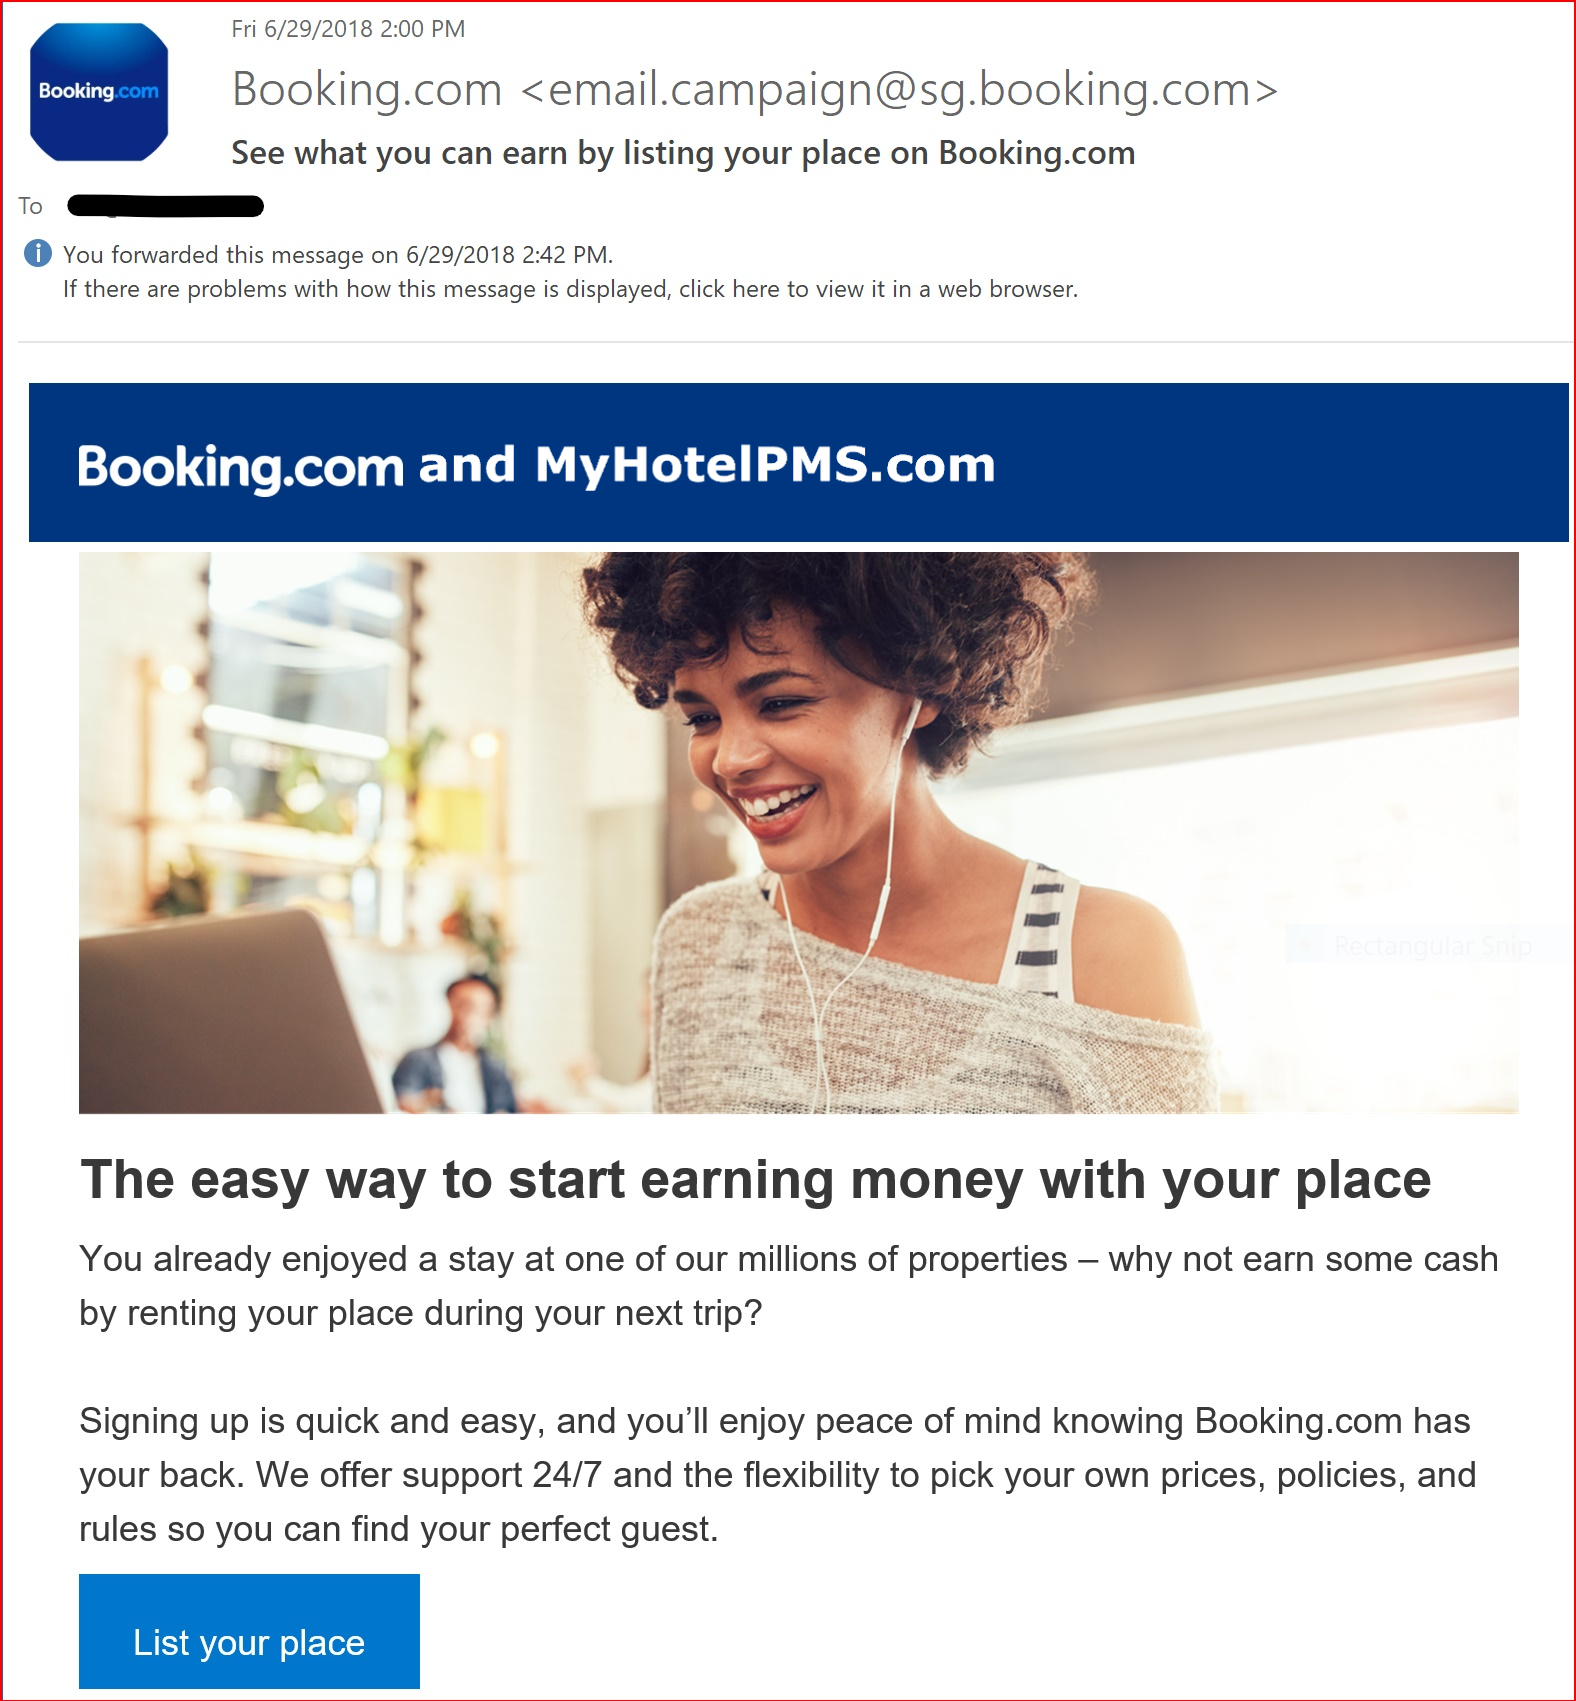 See what you can earn by listing your place on Booking.com by MyHotelPMS.com